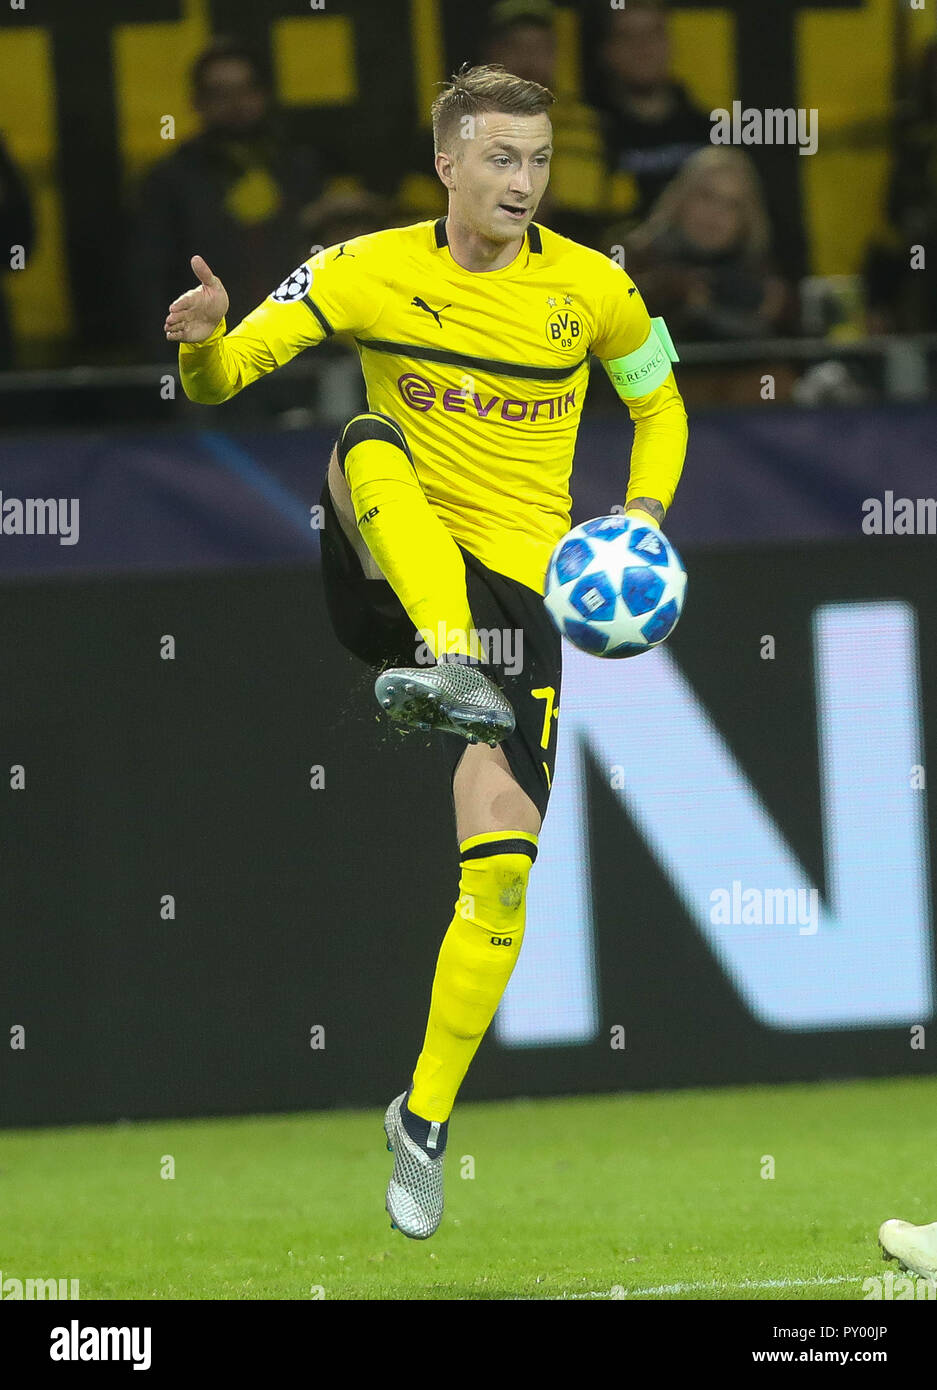 Dortmund, Germany. 24th October, 2018. Marco Reus (Borussia Dortmund) during the UEFA Champions League, Group A football match between Borussia Dortmund and Atletico de Madrid on October 24, 2018 at Signal Iduna Park in Dortmund, Germany - Photo Laurent Lairys / DPPI Credit: Laurent Lairys/Agence Locevaphotos/Alamy Live News Stock Photo